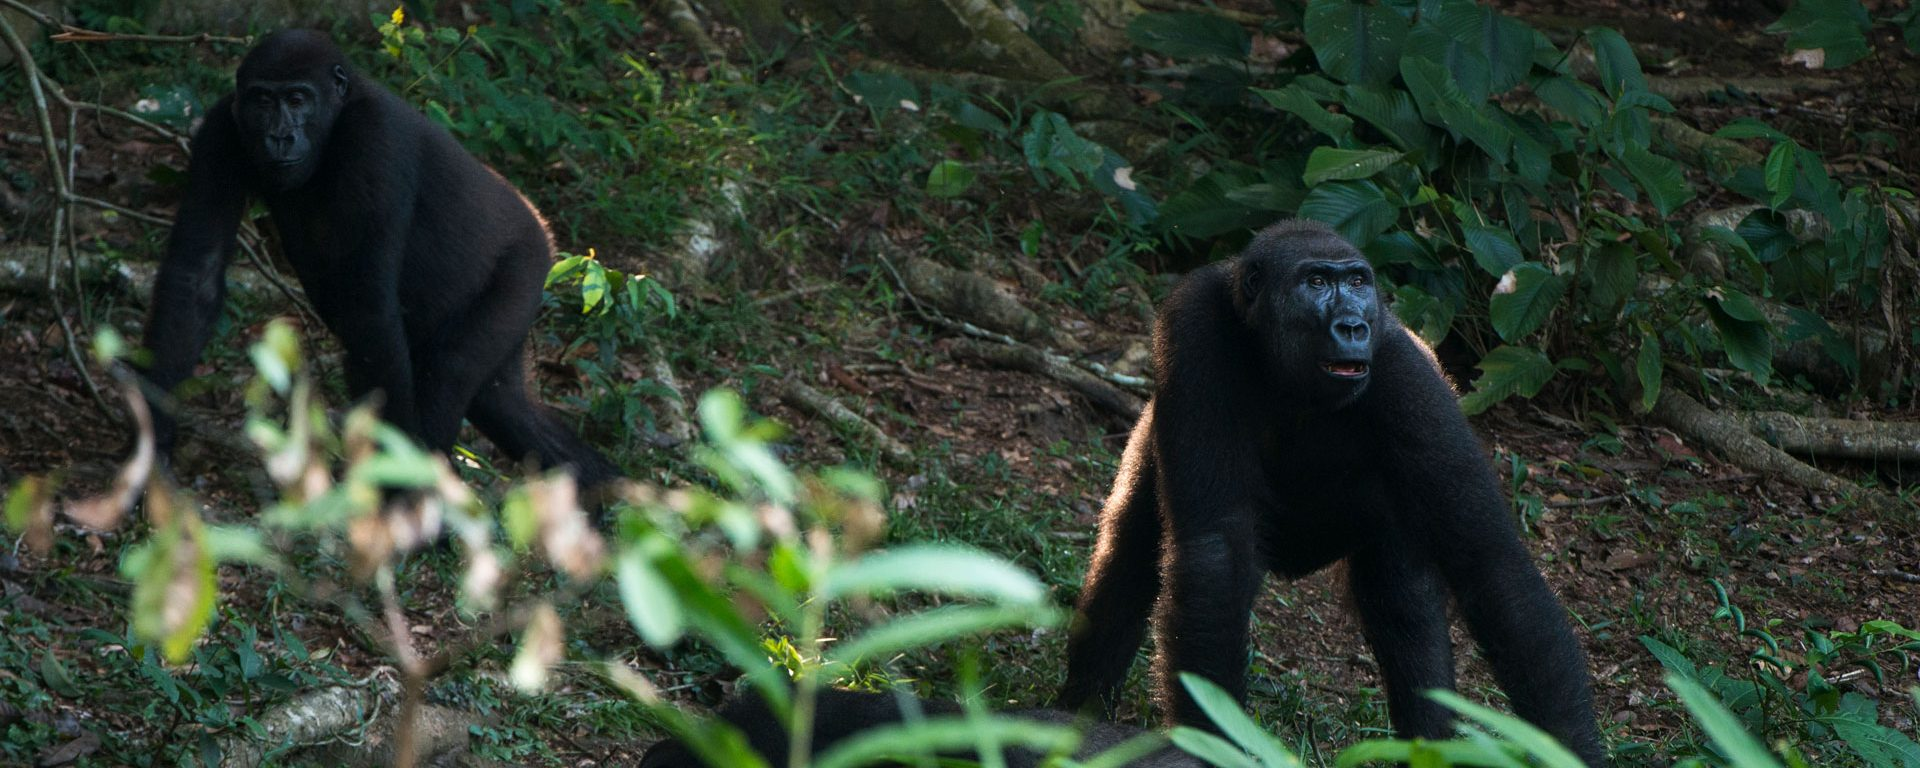 Two western lowland gorillas in Odzala-Kokoua National Park, Congo